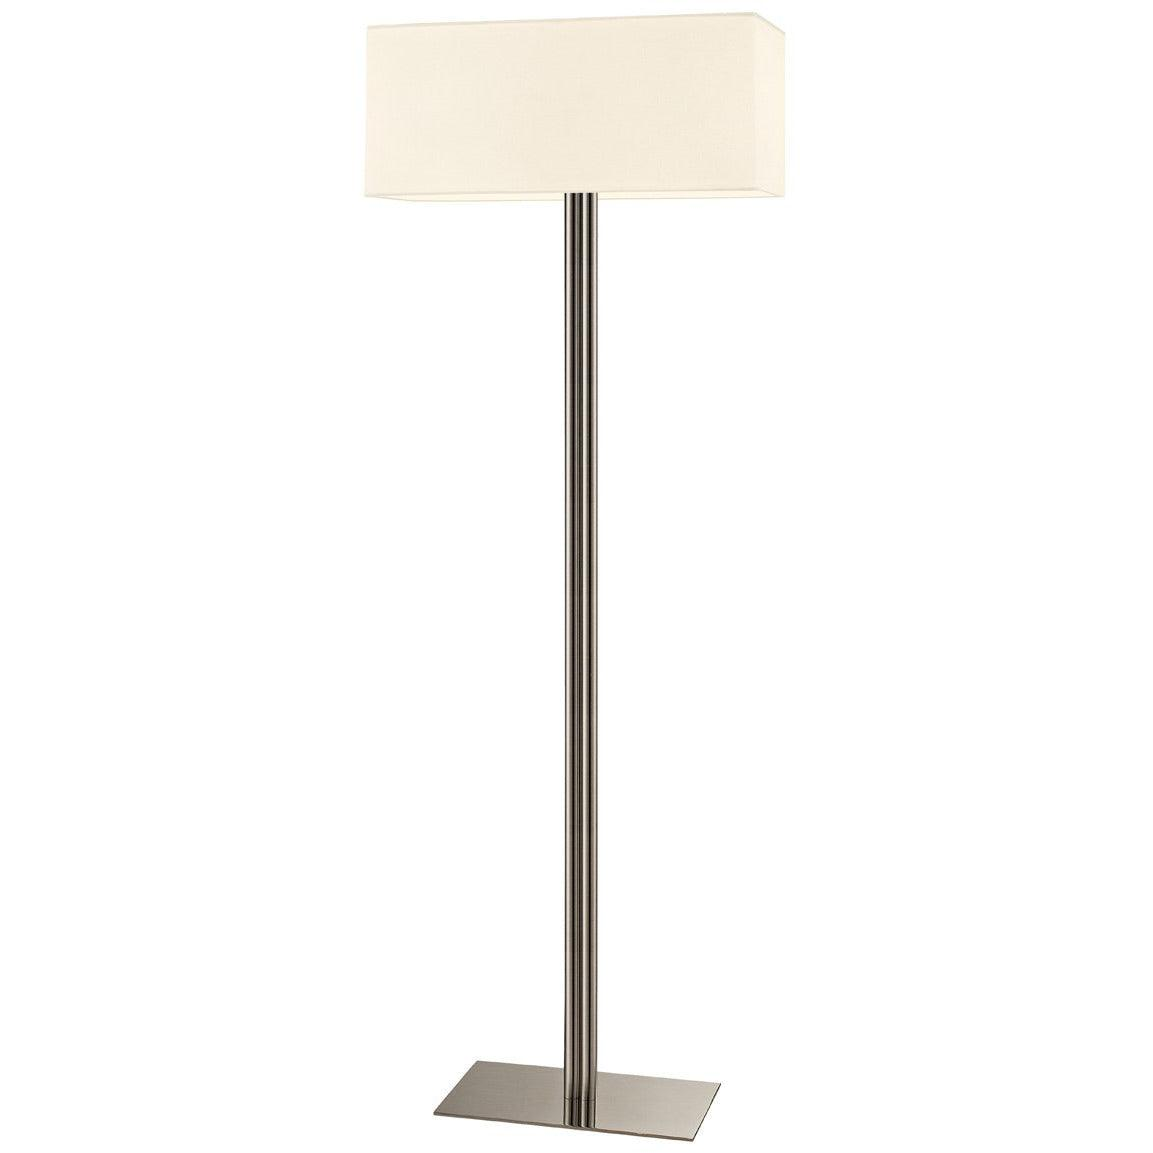 Sonneman - A Way of Light - 4613.13 - Two Light Floor Lamp - Madison - Satin Nickel